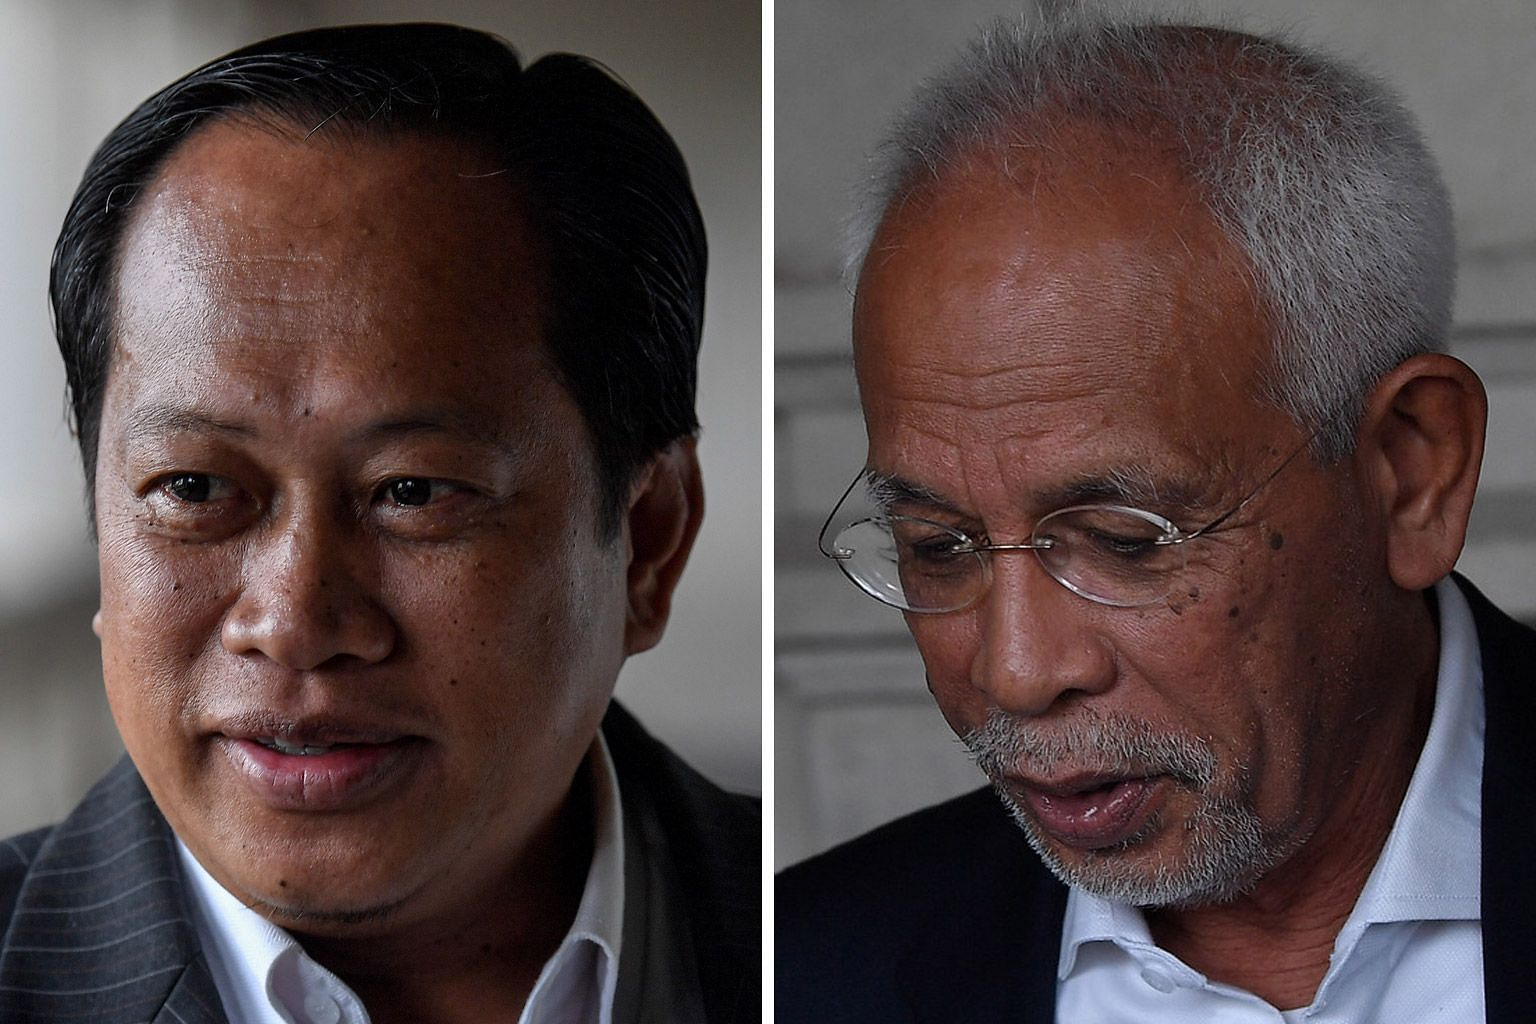 Pontian MP Ahmad Maslan (left) and Johor Baru Umno division chief Shahrir Samad both pleaded not guilty when the charges were read out to them yesterday.